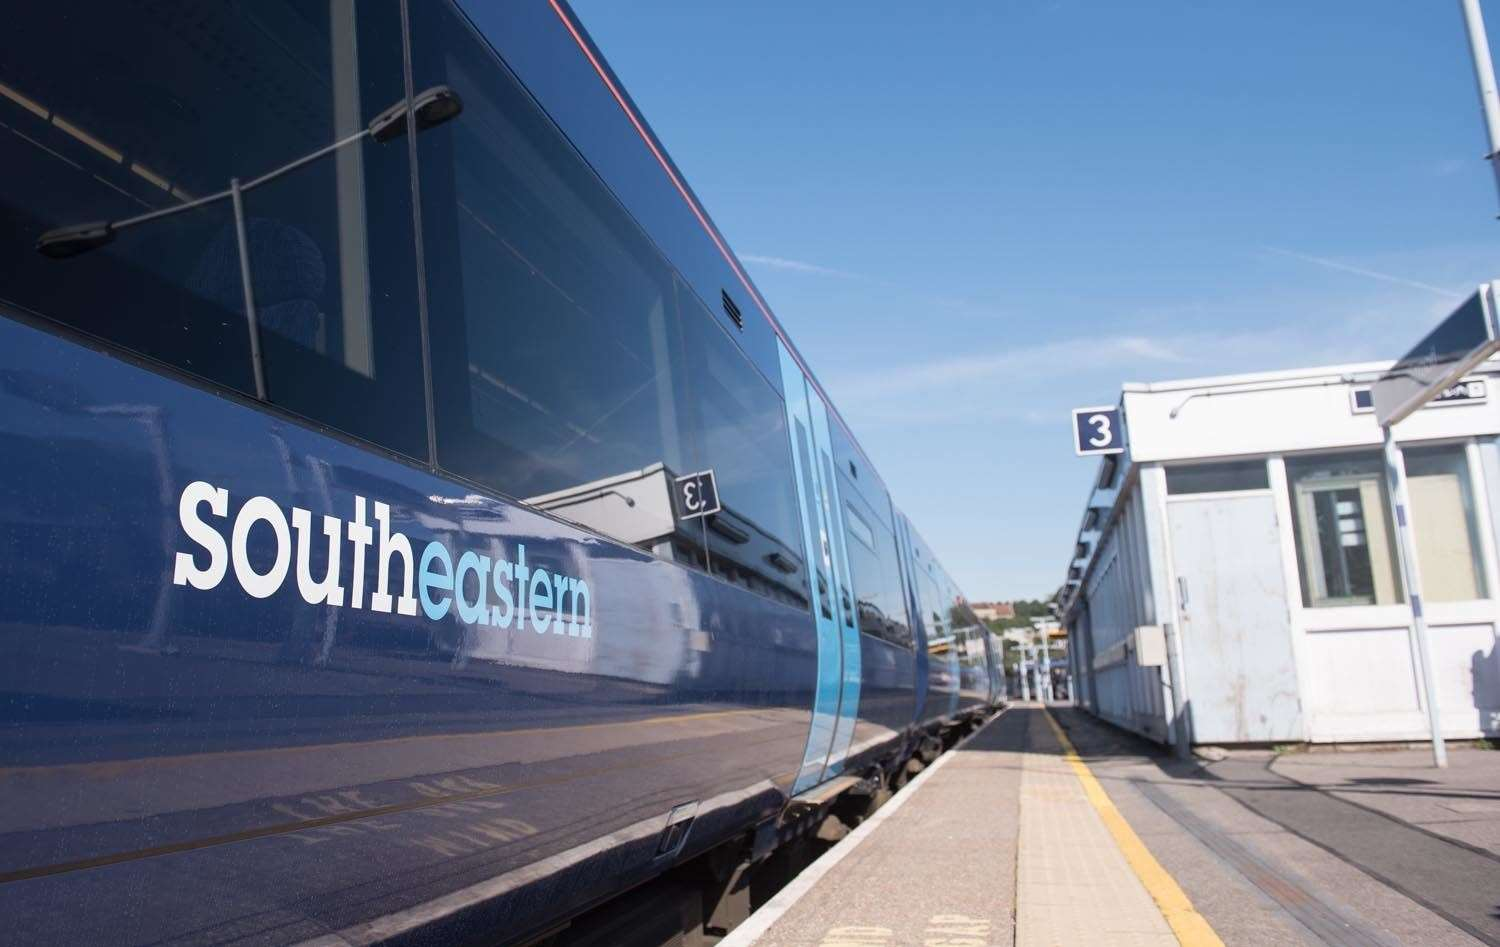 A Southeastern train. Stock picture (10006411)